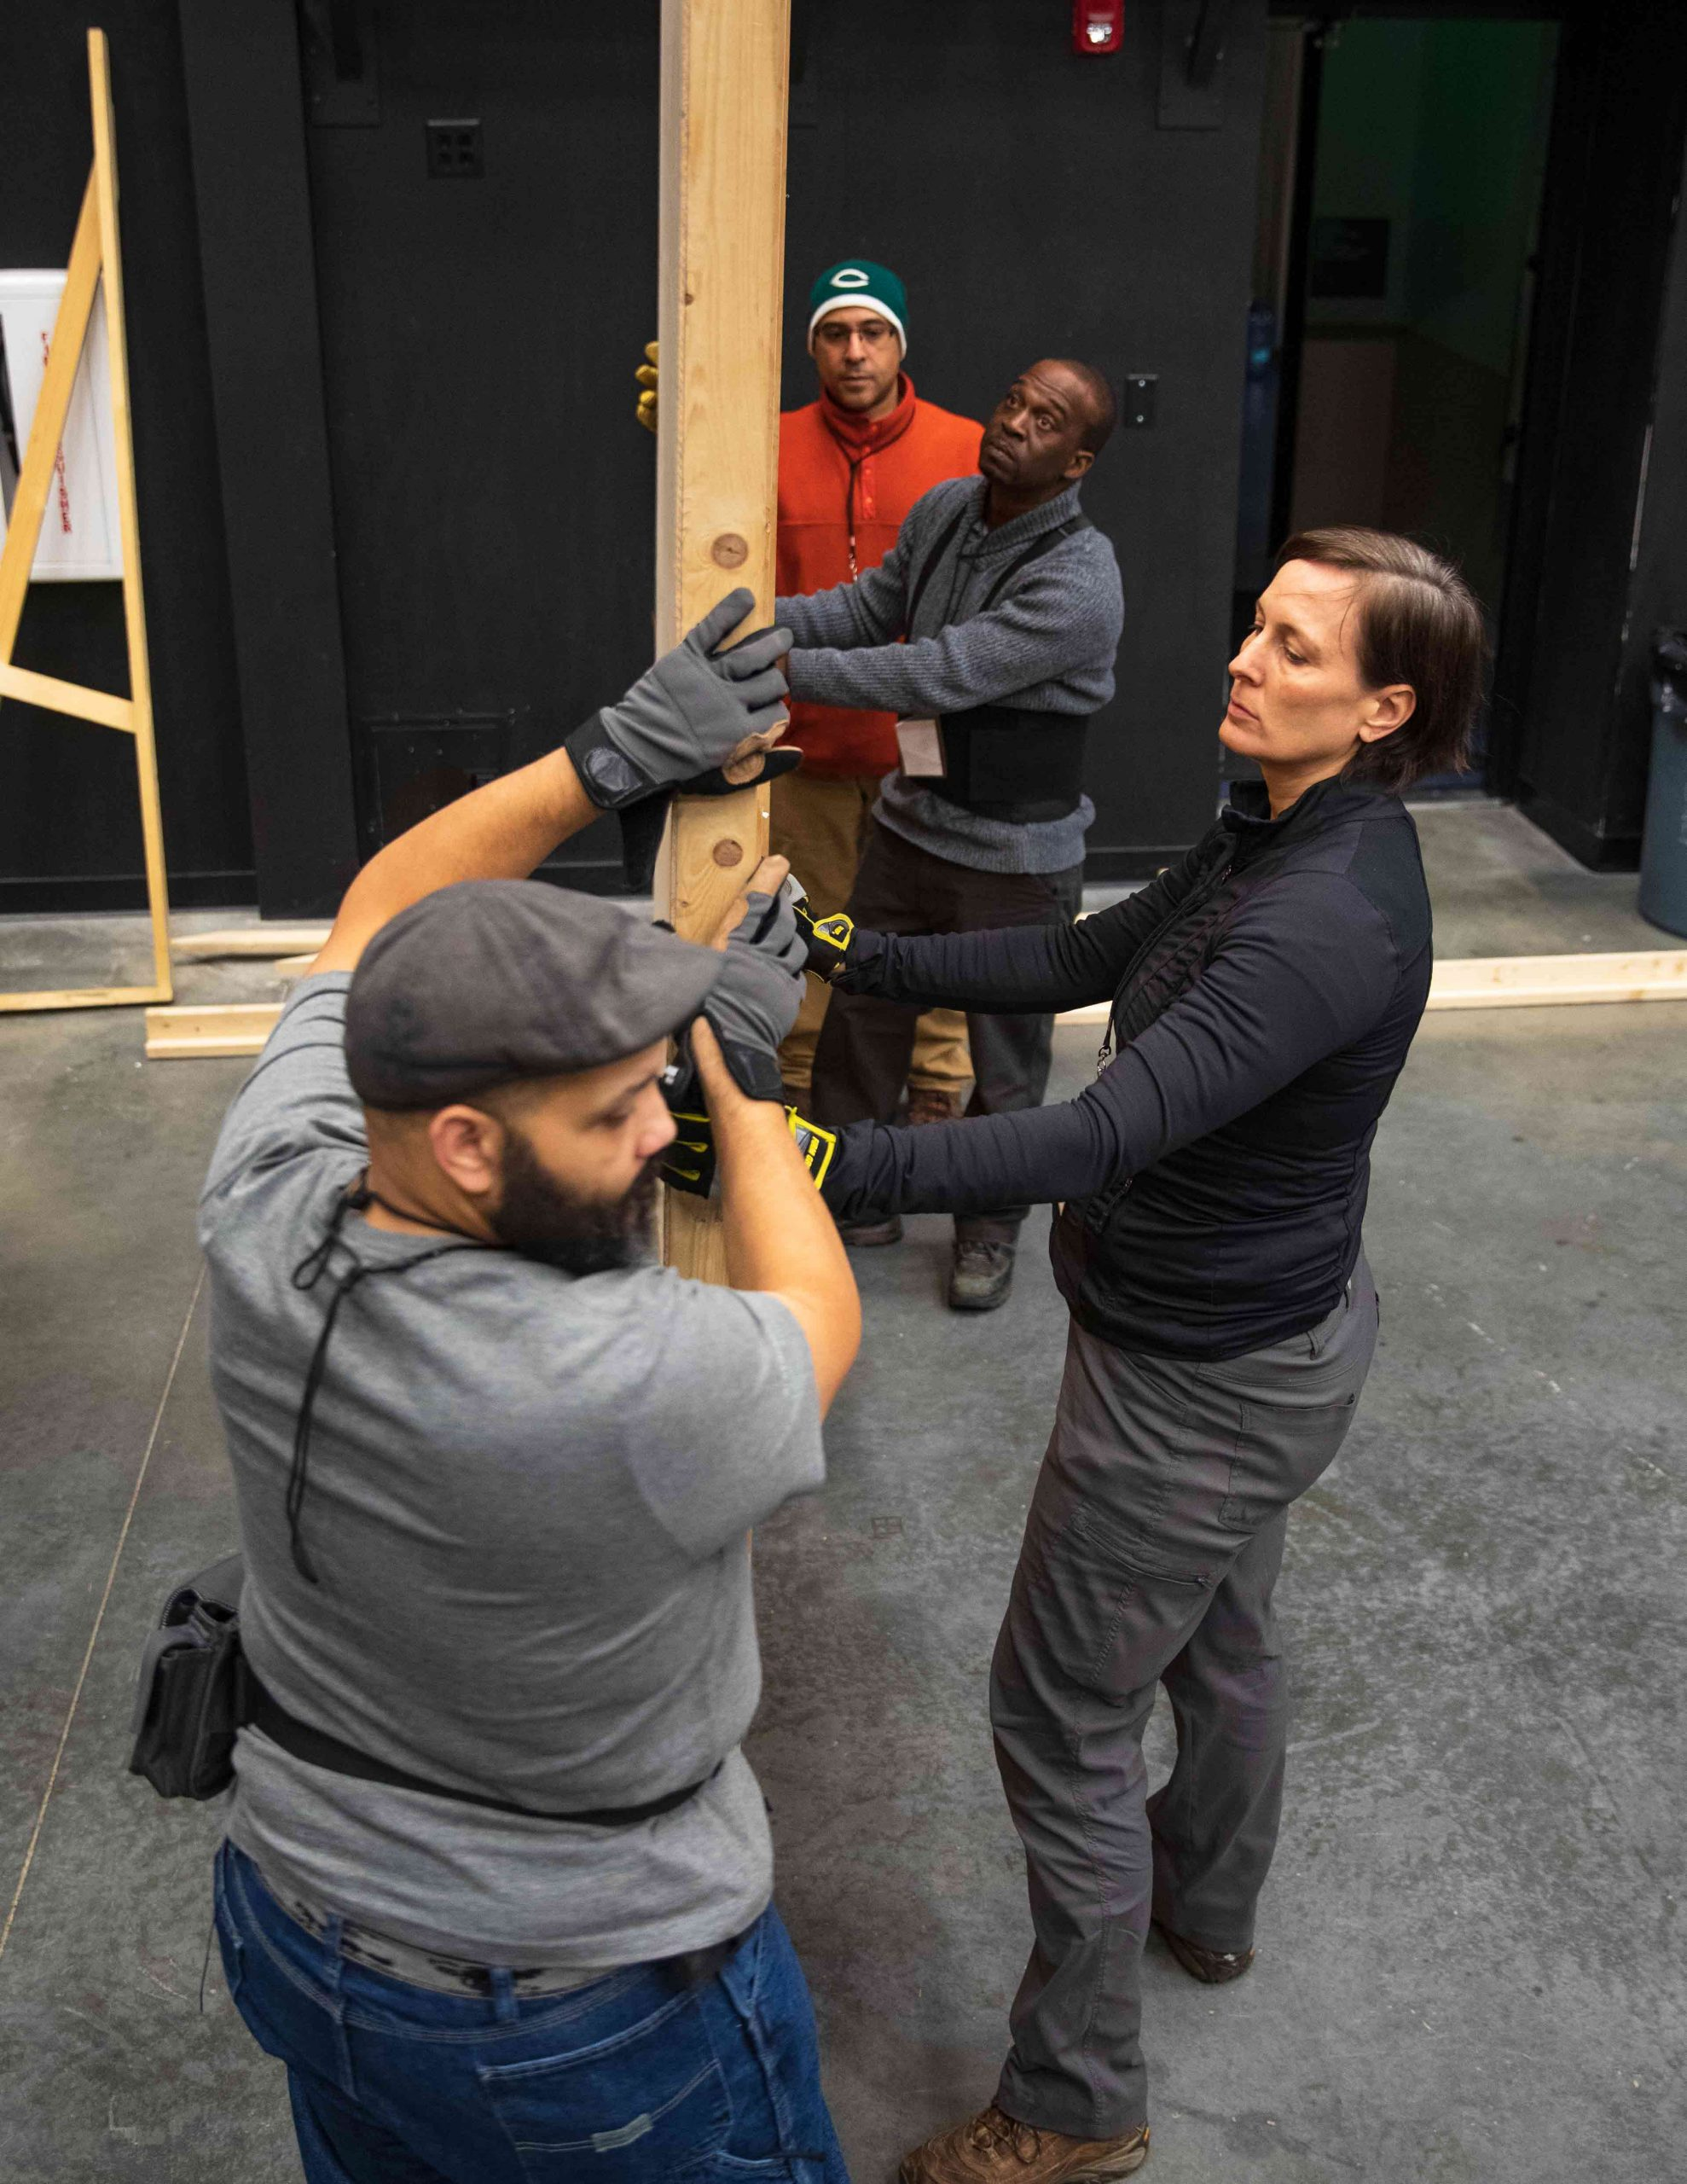 crew members working together moving a wooden prop